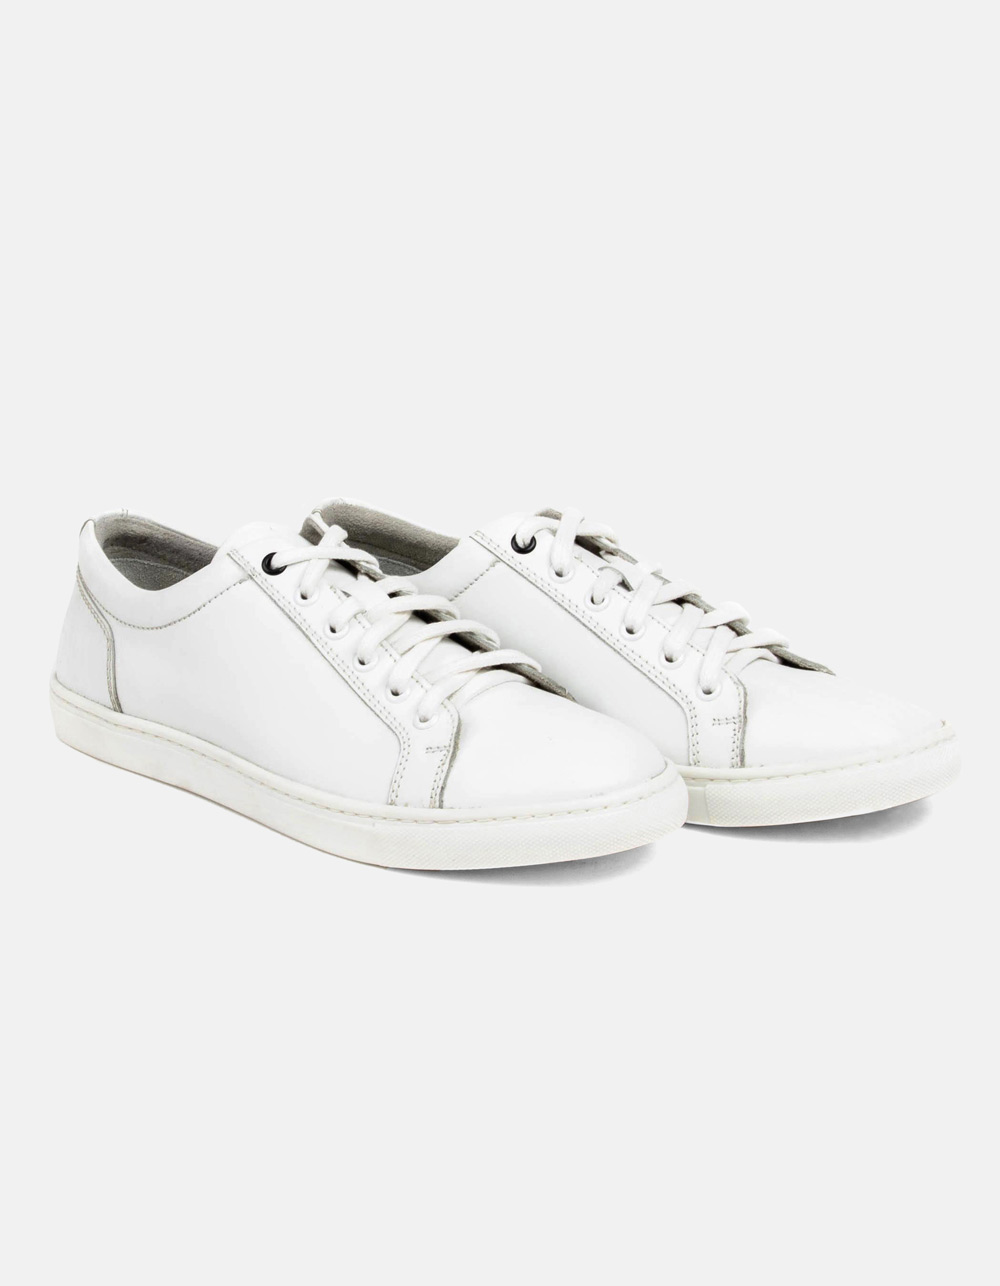 White leather sports